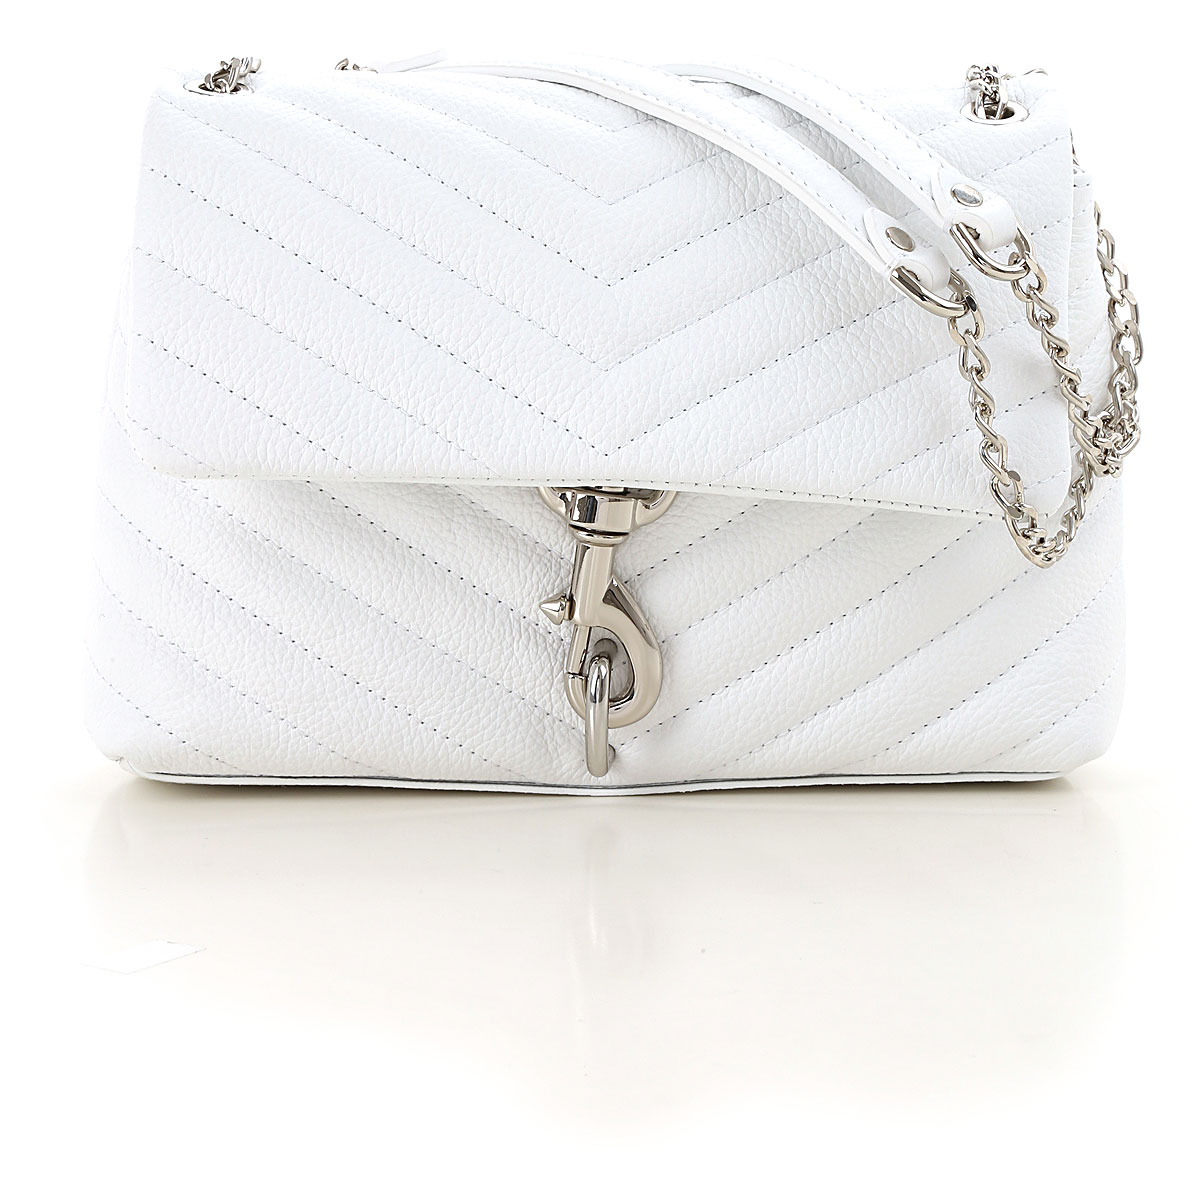 Rebecca Minkoff Shoulder Bag for Women On Sale in Outlet, Optic White, Leather, 2019